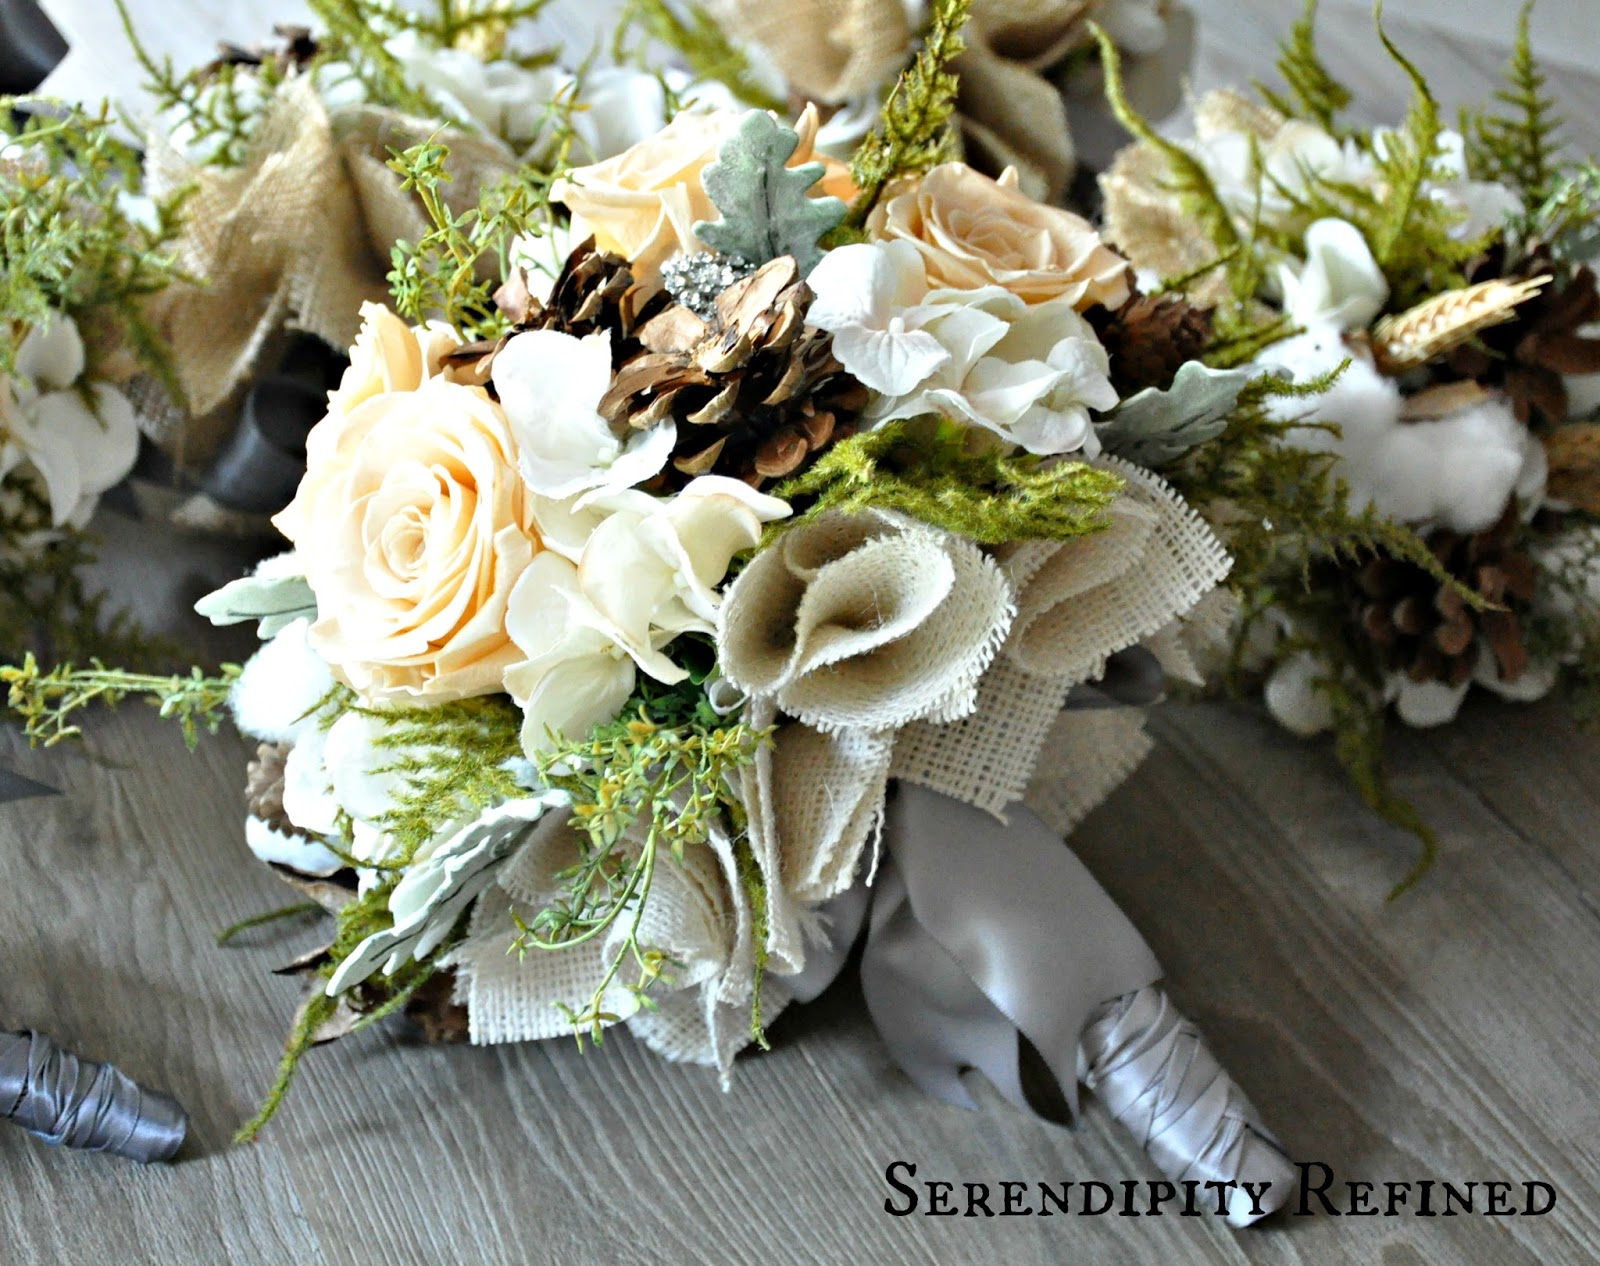 Serendipity Refined Blog: Flowers for an Autumn Wedding: Pinecones ...